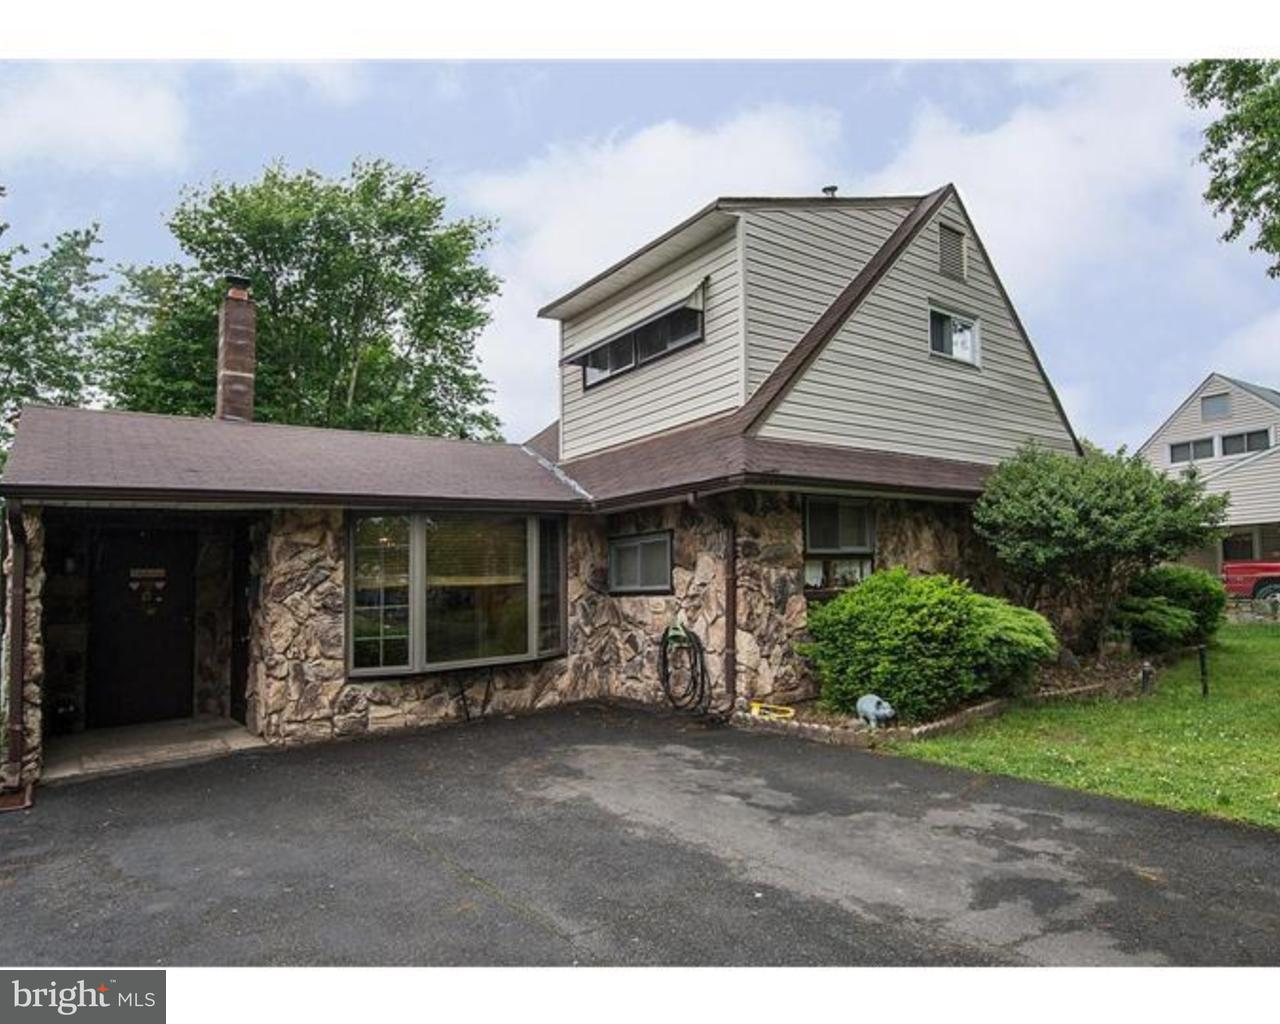 148 ELDERBERRY DR, LEVITTOWN - Listed at $229,000, LEVITTOWN